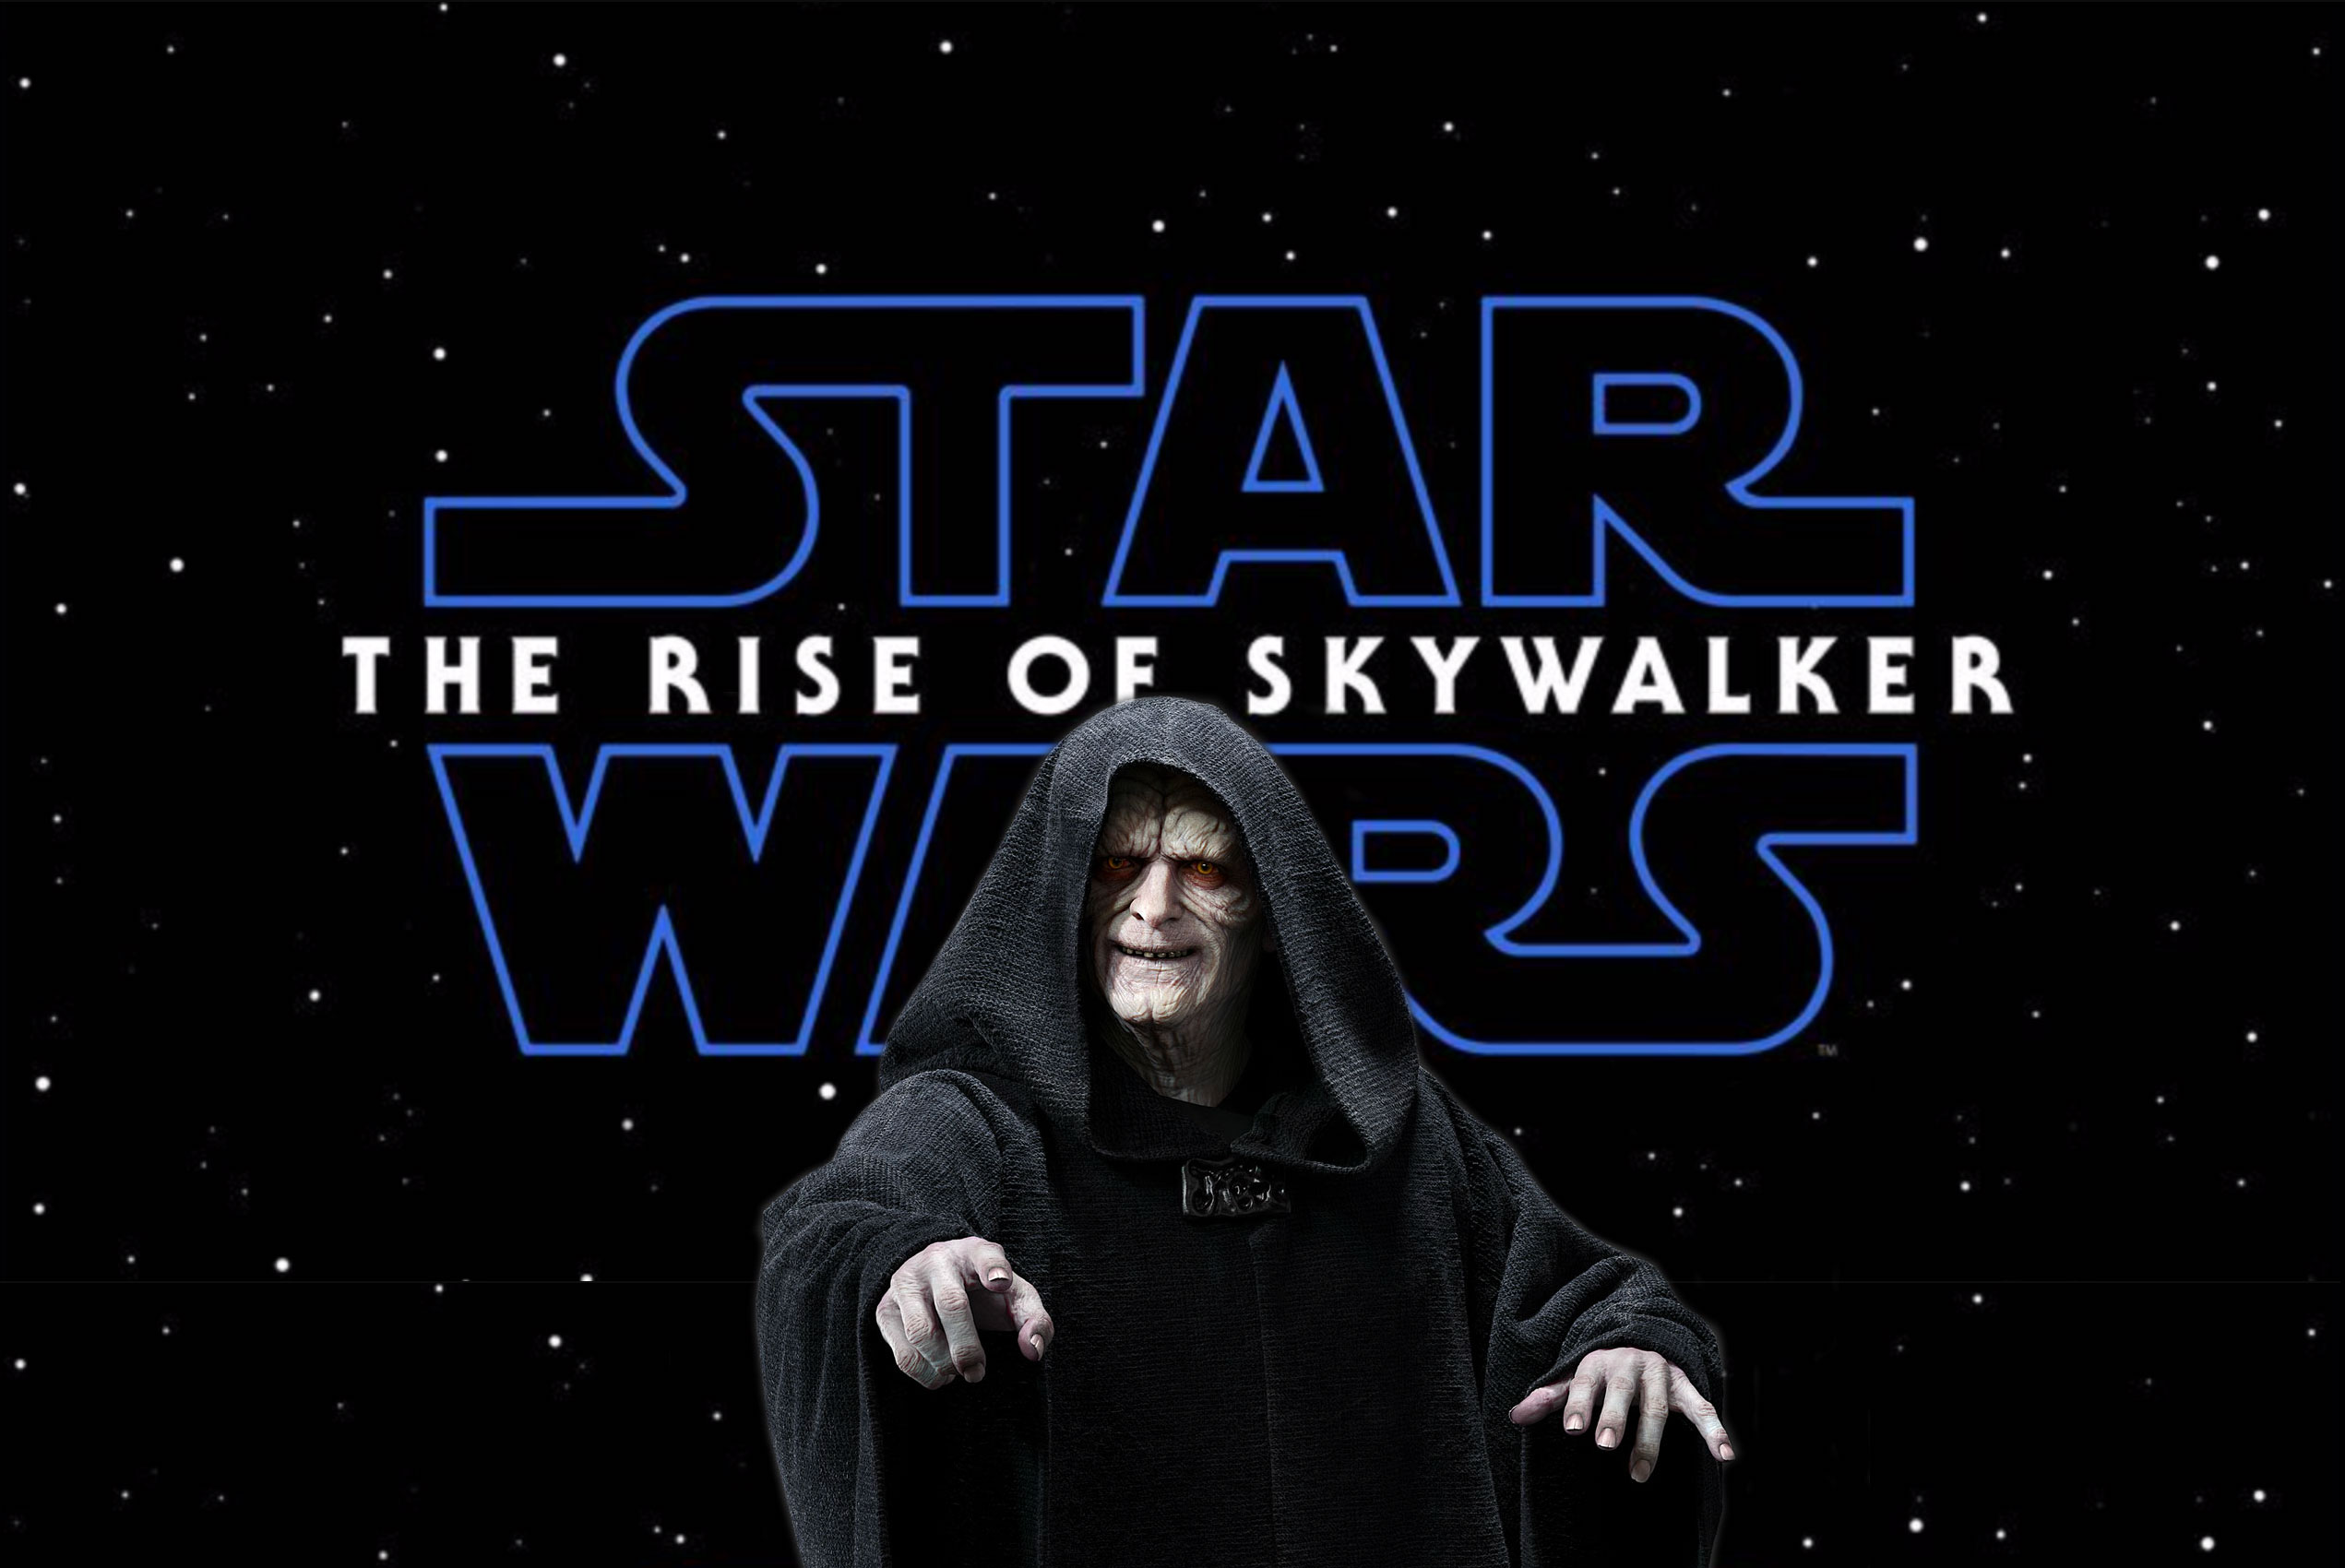 Star Wars: The Rise of Skywalker - L'analisi del trailer 2.0